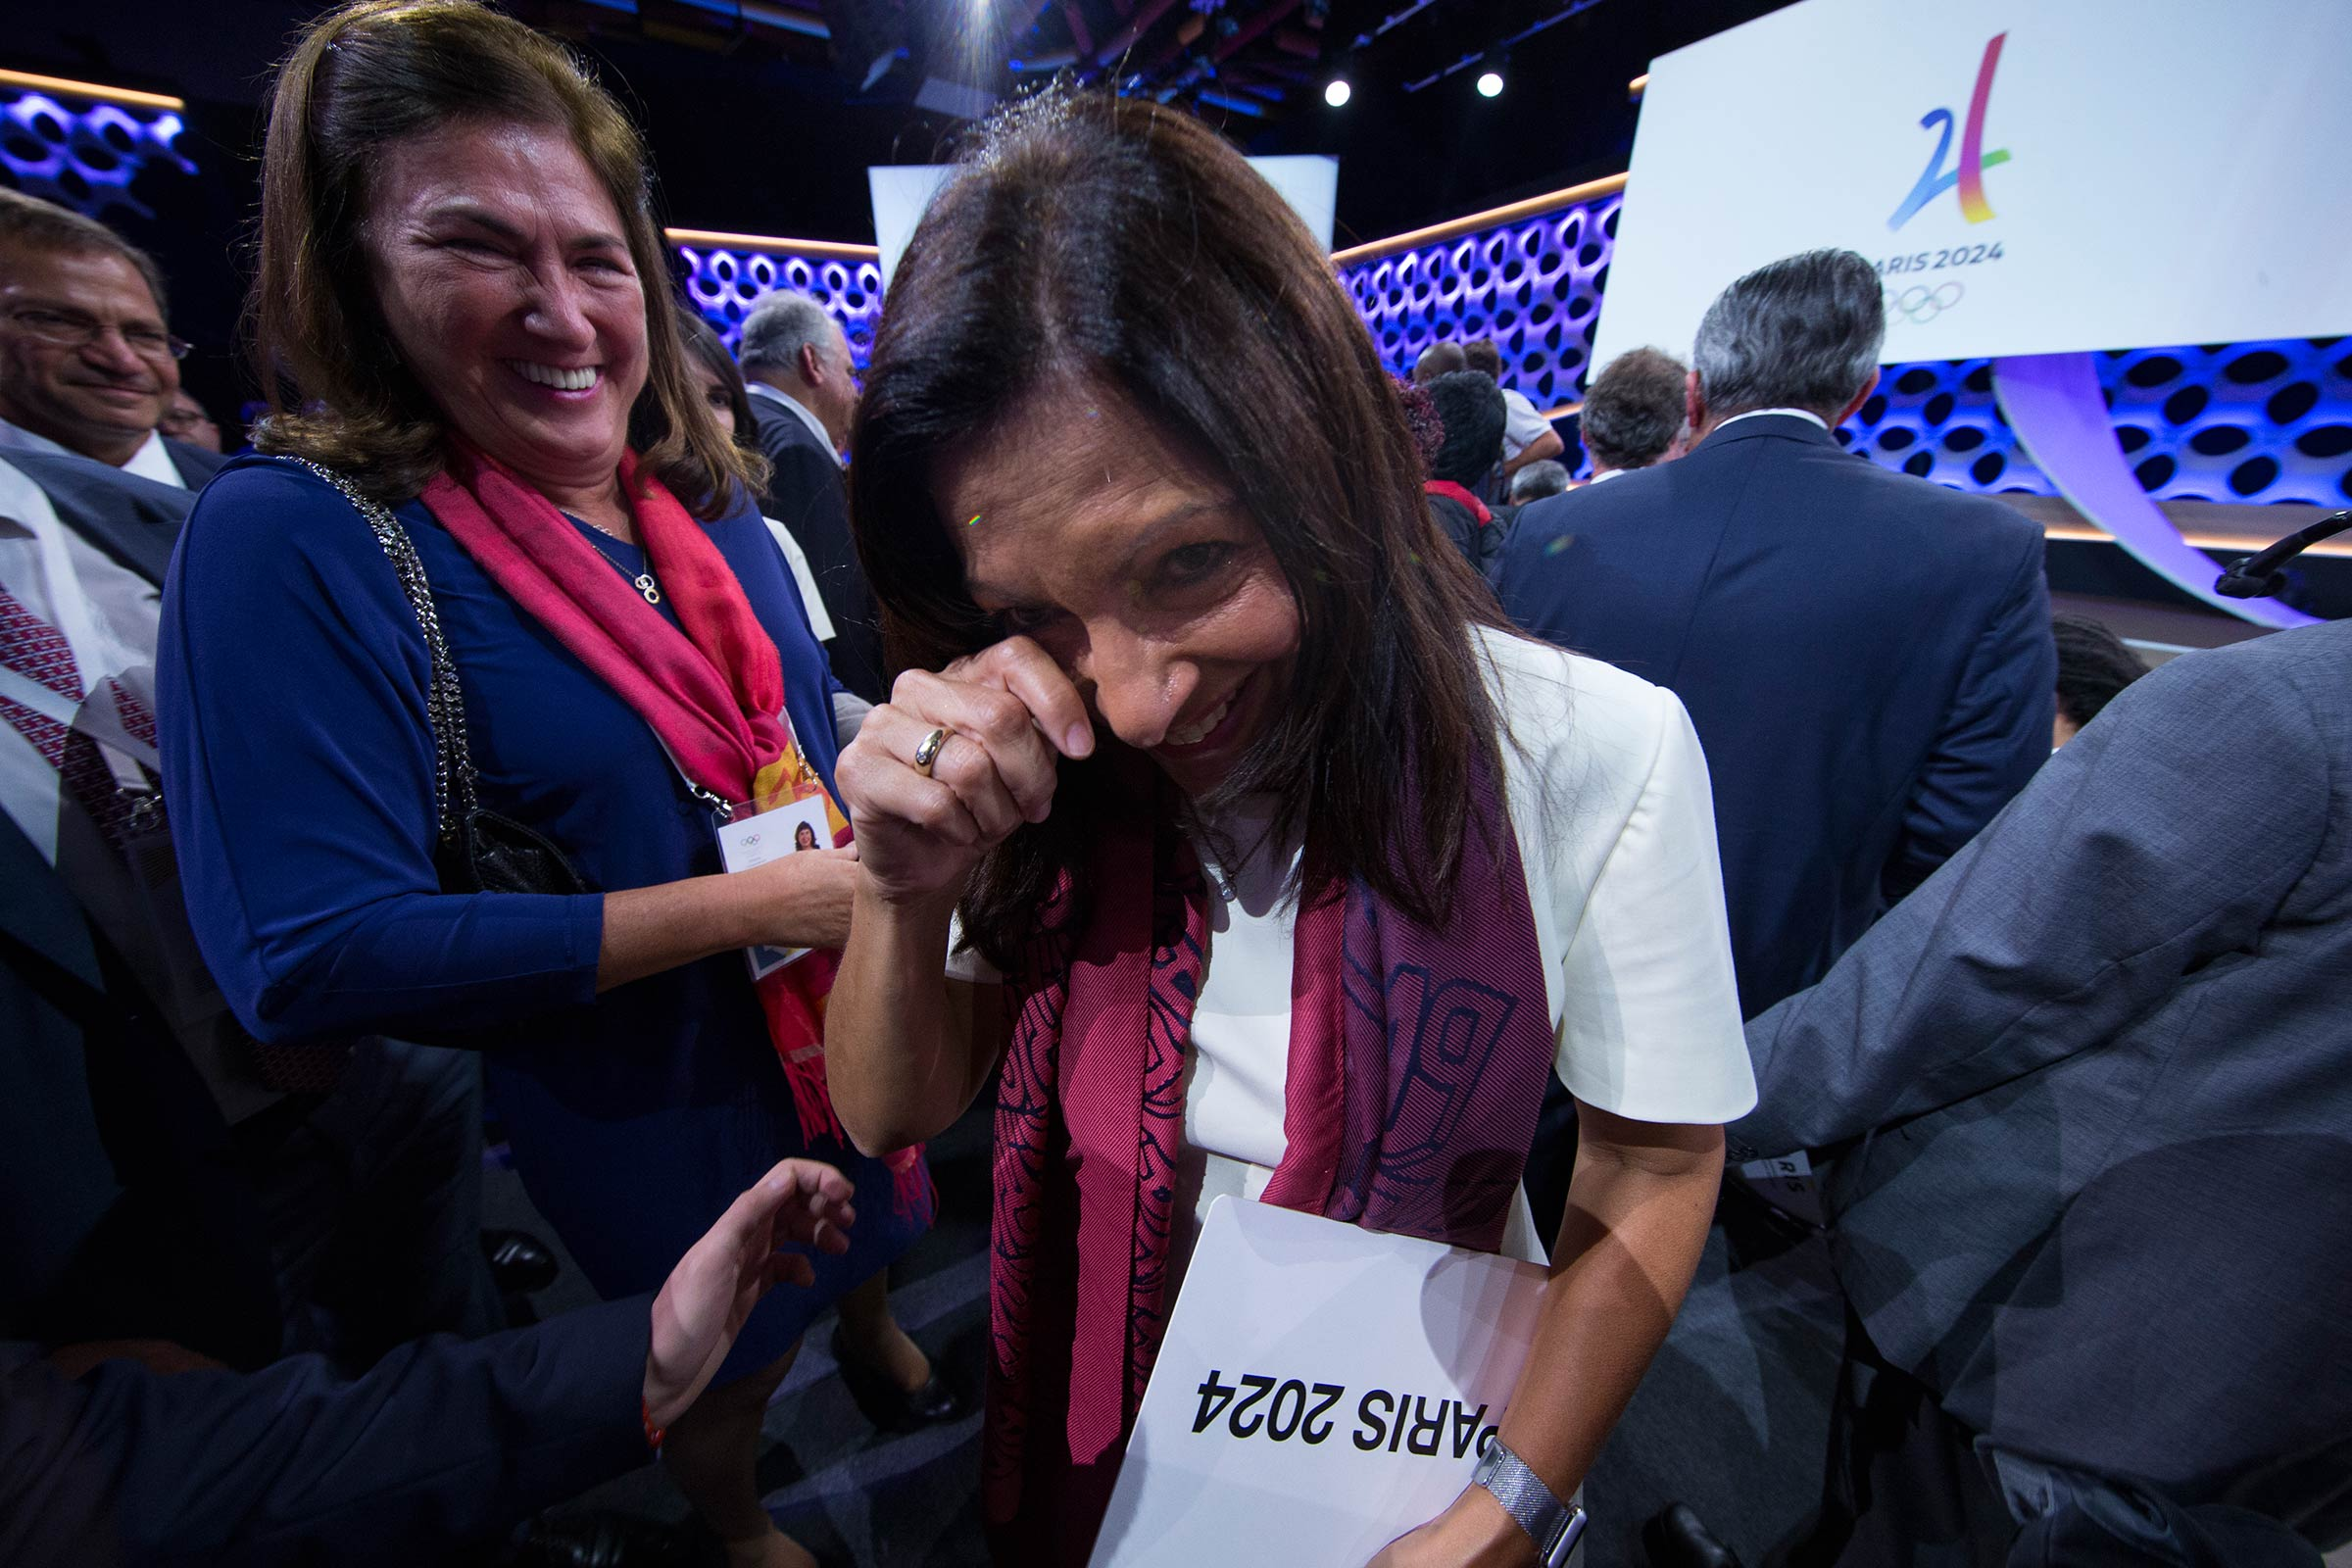 An emotional moment for Anne Hidalgo